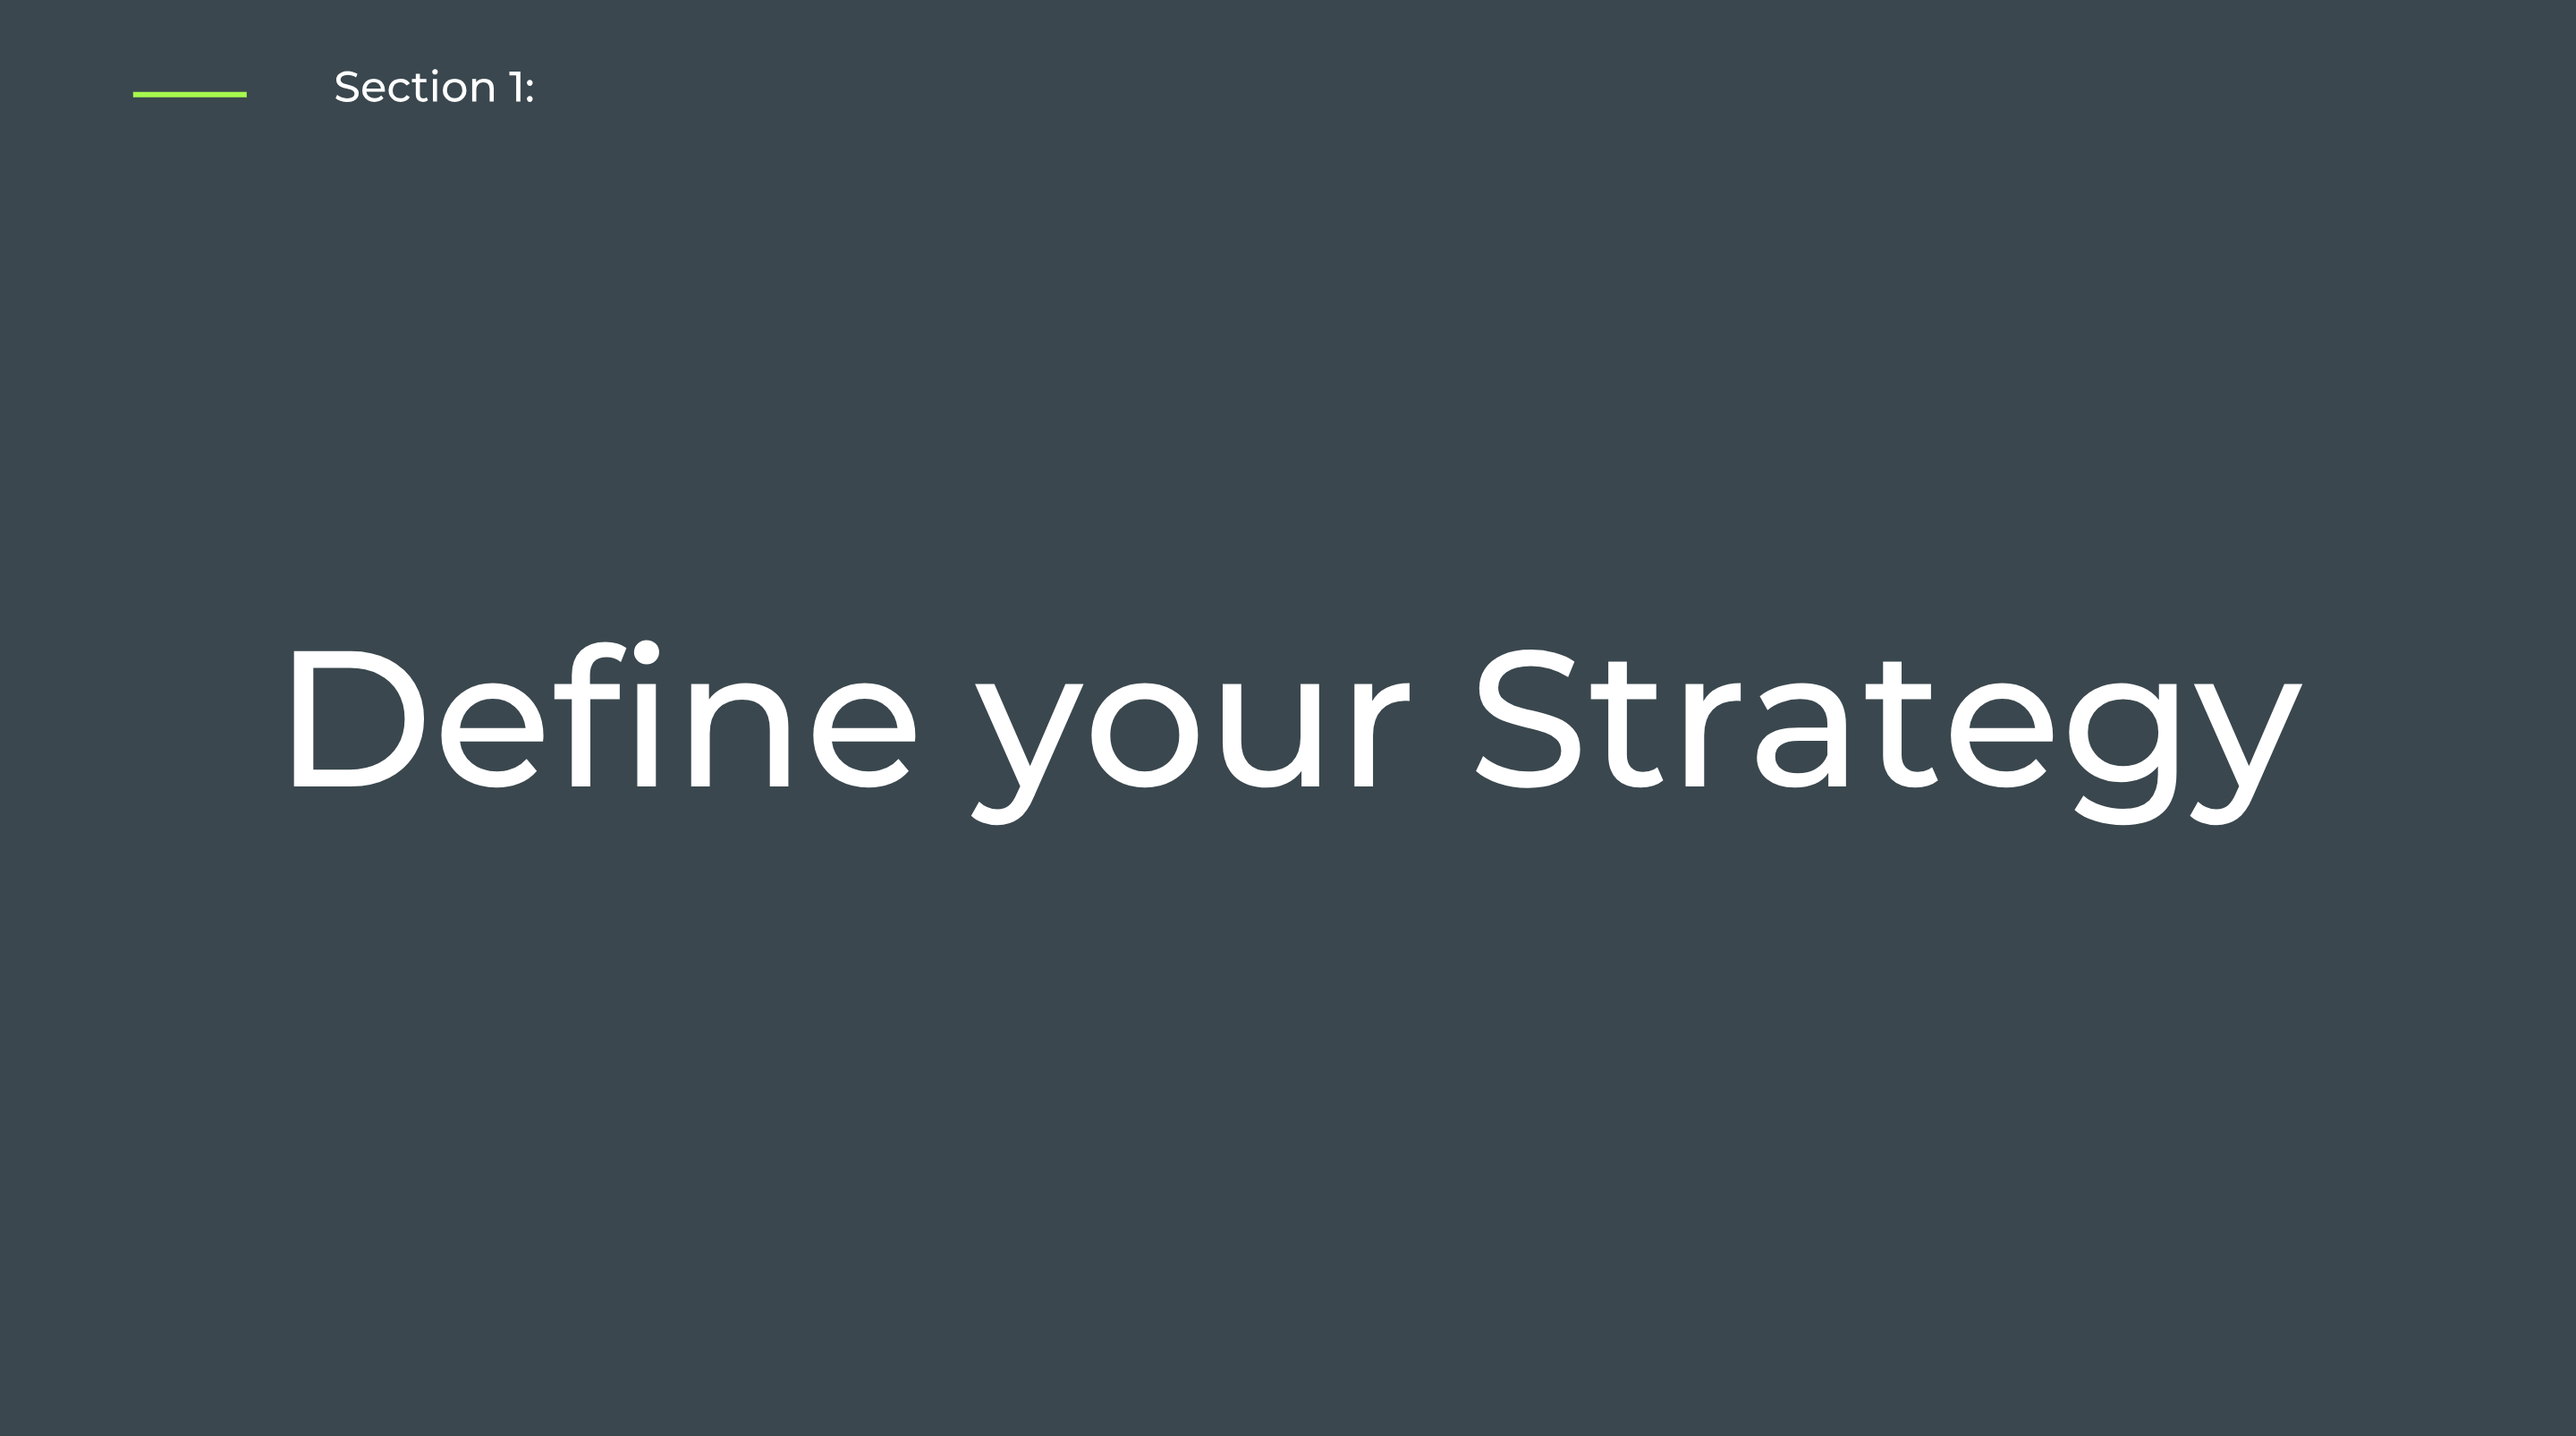 Section 1: Define your Strategy - Self-Paced Onboarding for Admins